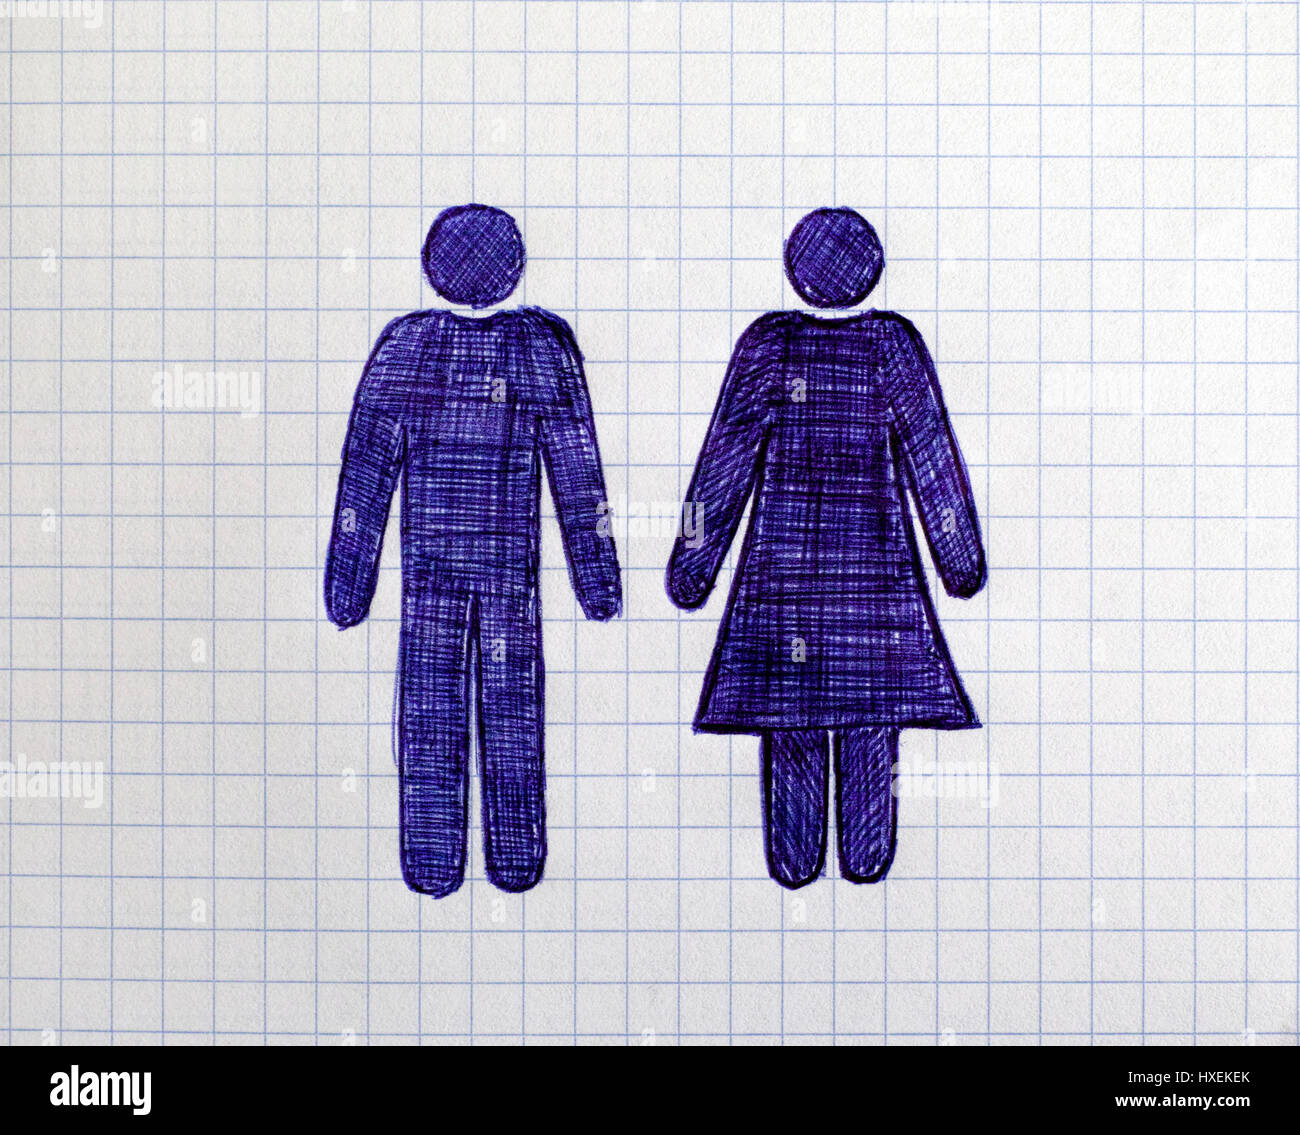 Hand drawn man and woman figures on the sheet of checkered paper. Doodle style. - Stock Image